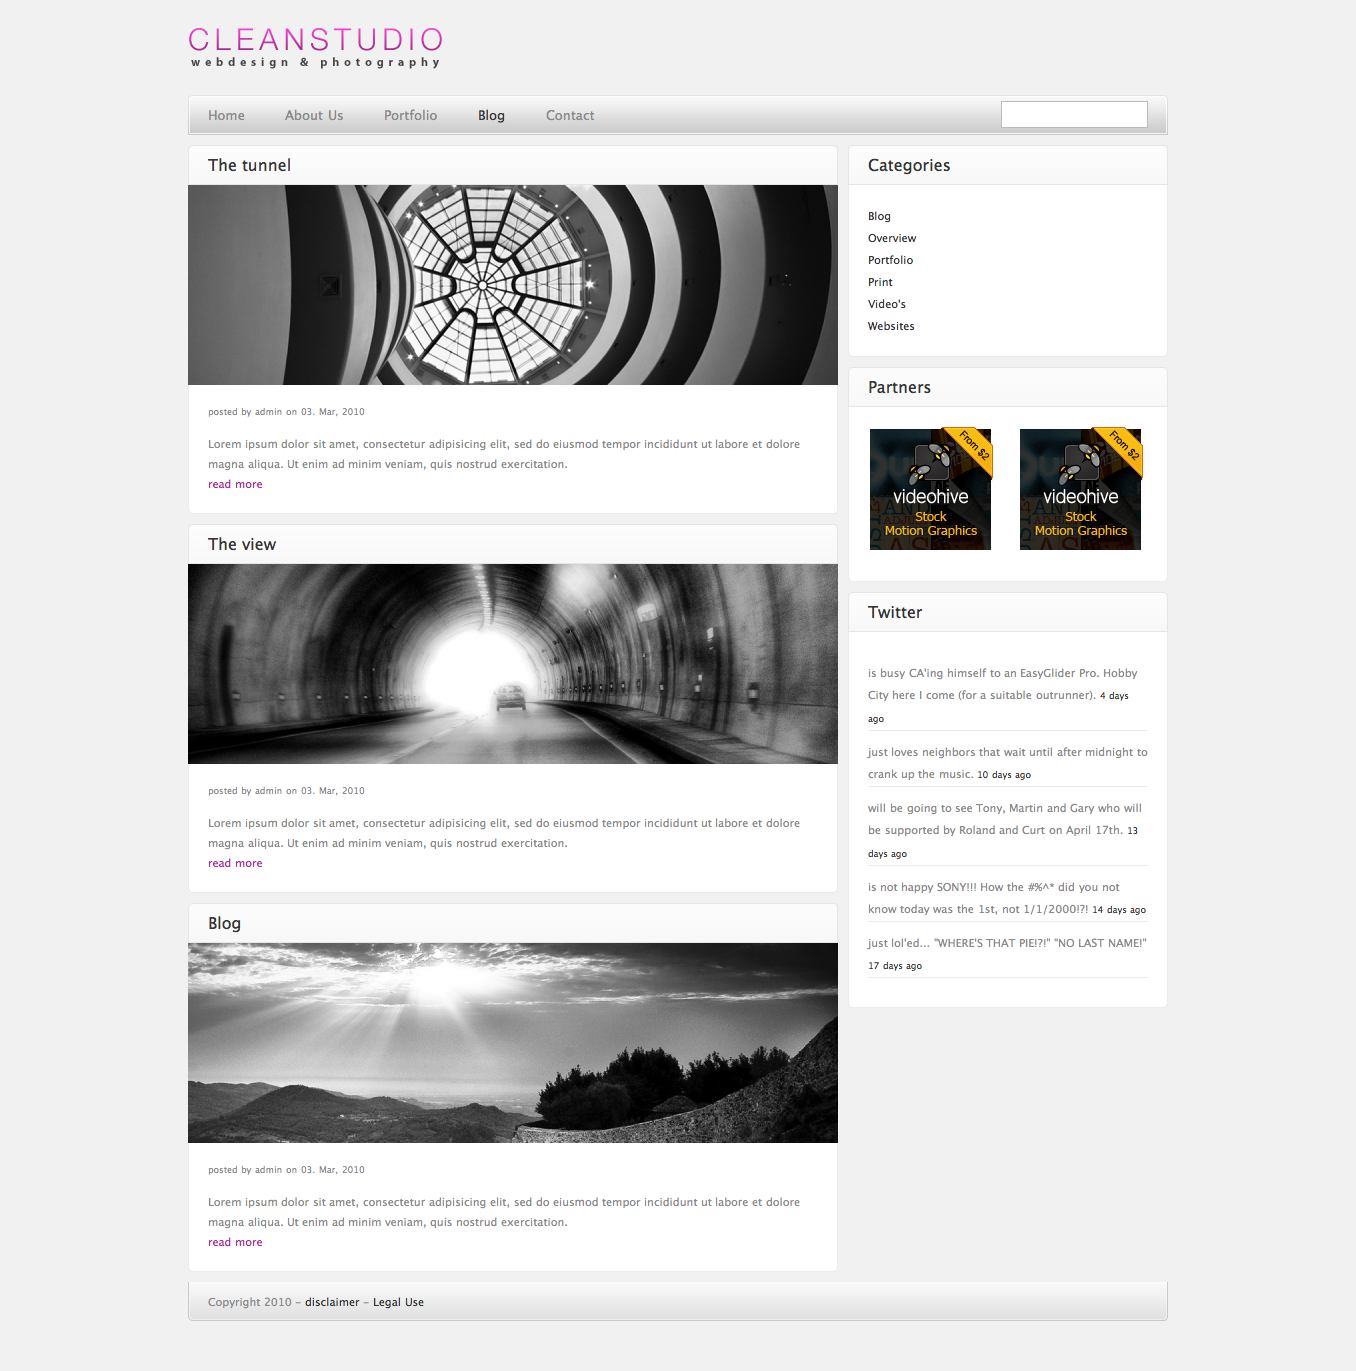 CLEAN STUDIO - WORDPRESS